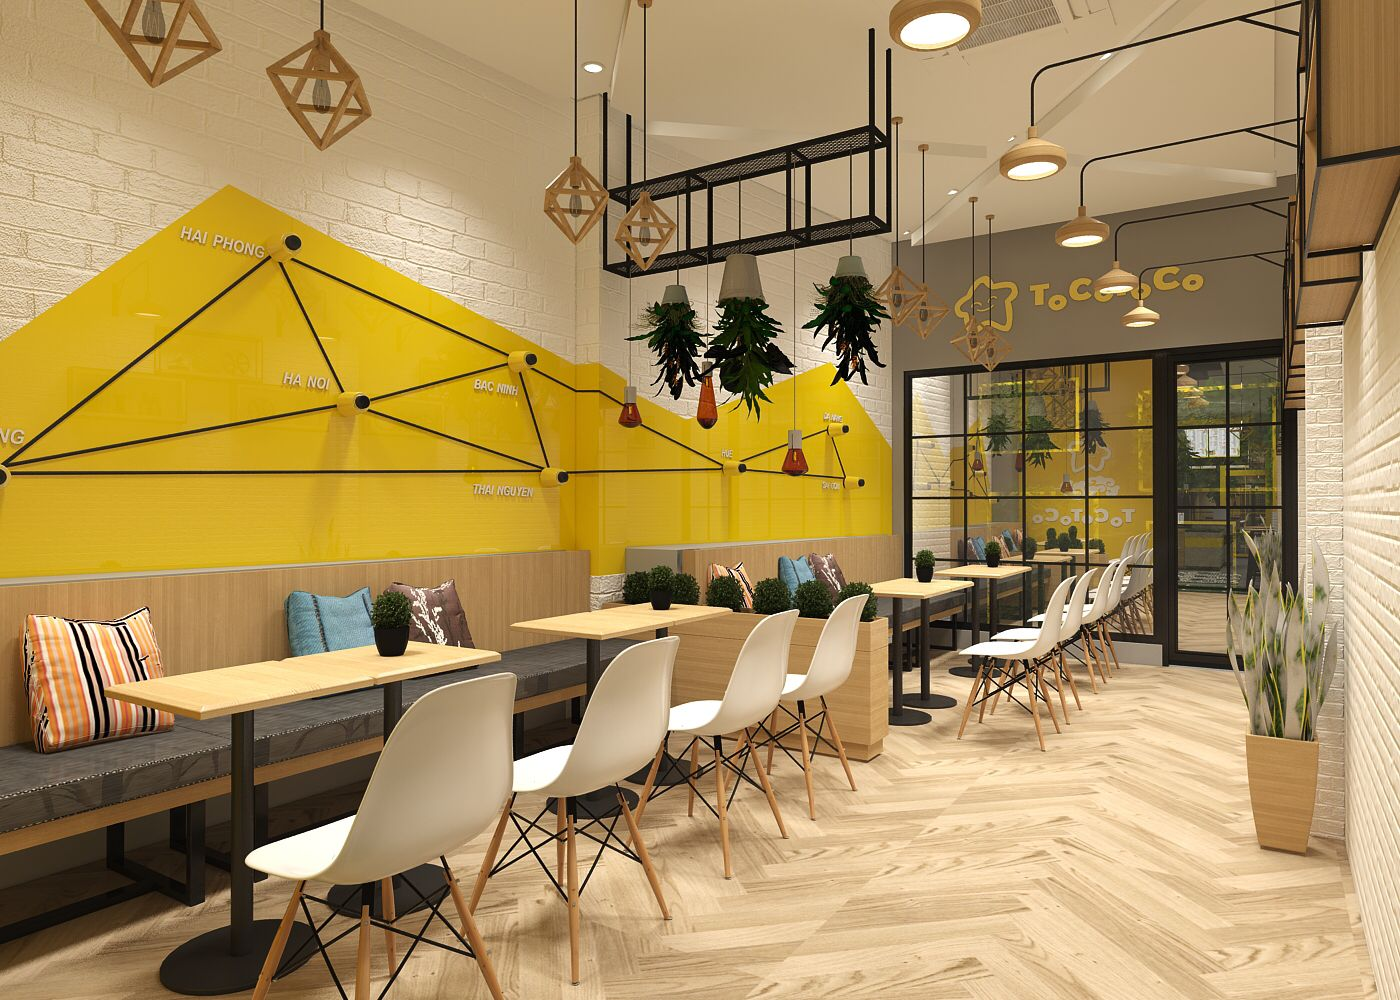 Toco Milktea Shop With Images Cafe Interior Design Bakery